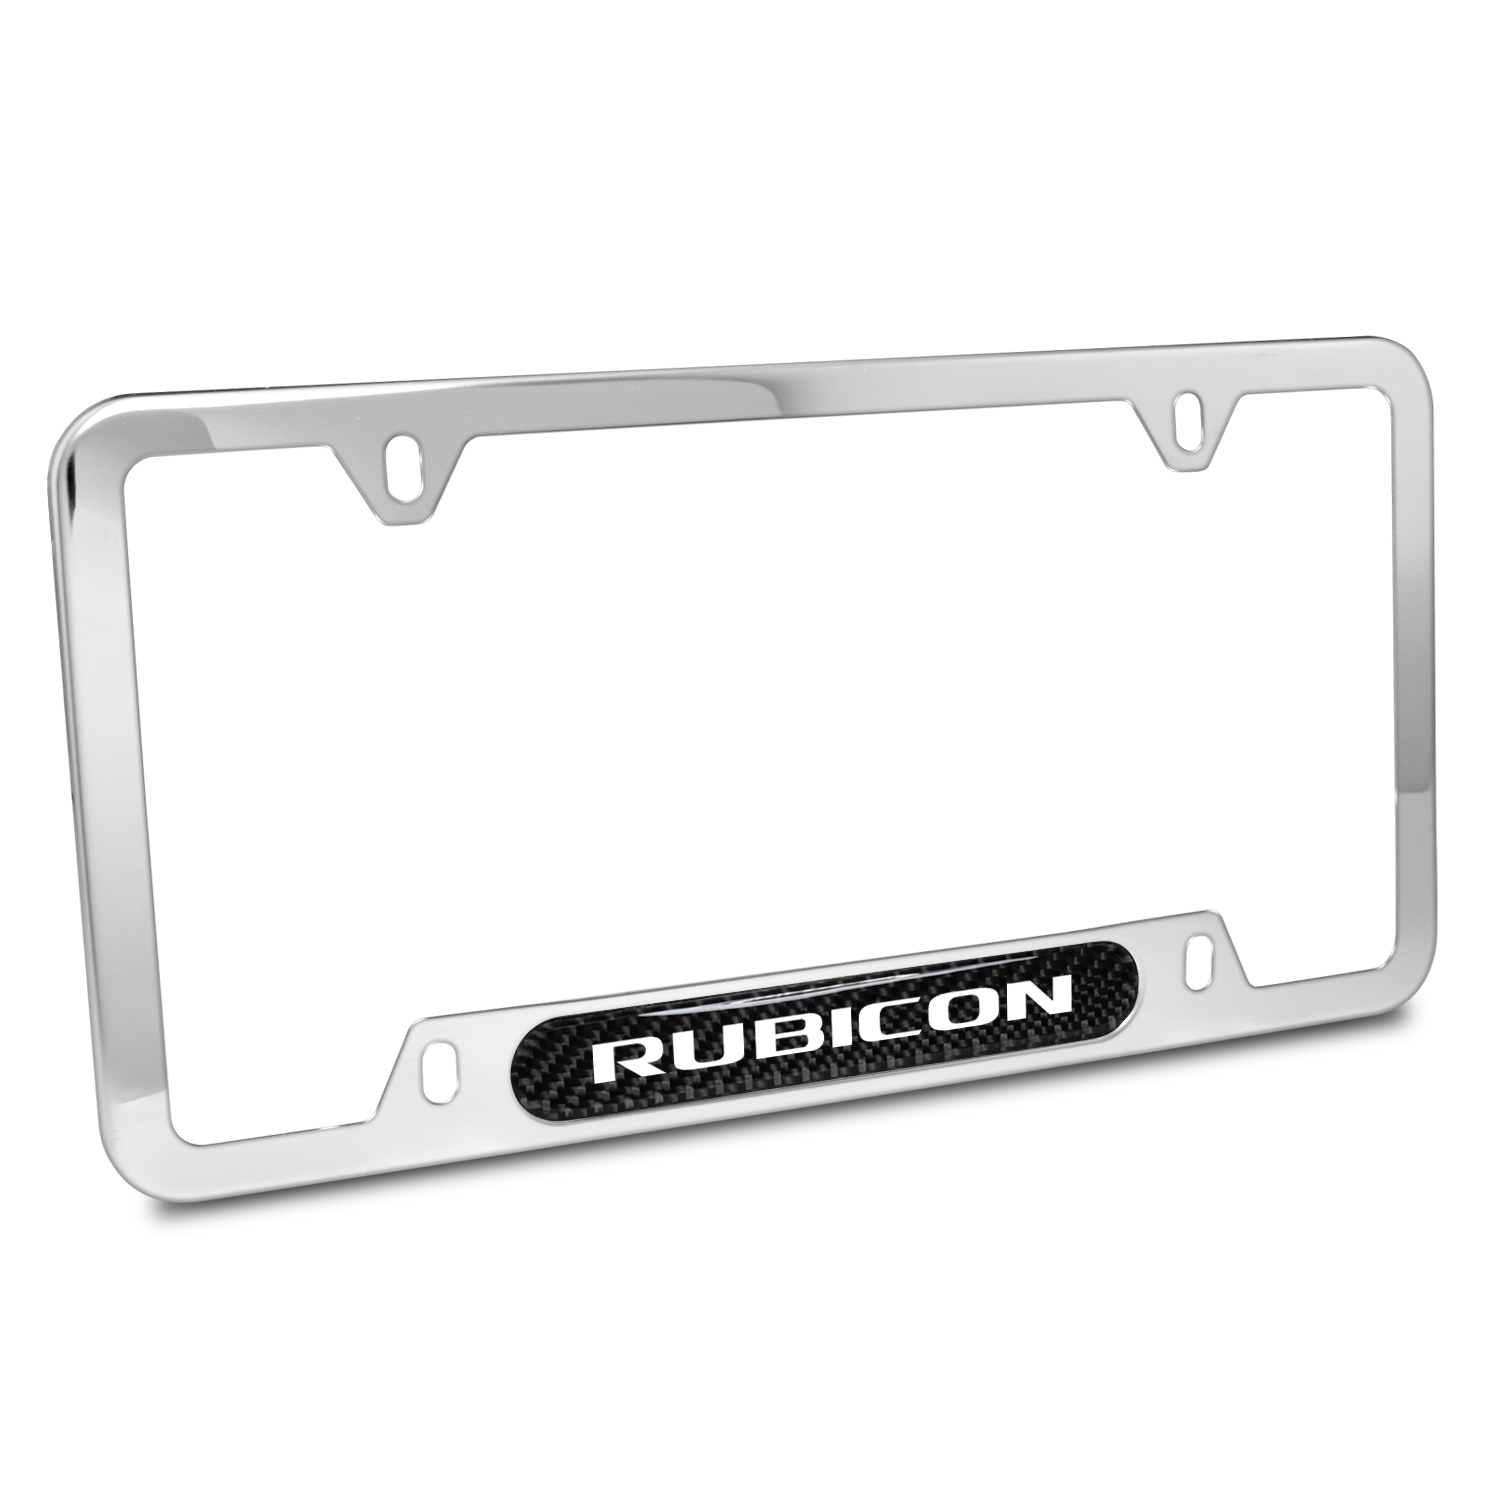 Jeep Rubicon Wrangler Real Carbon Fiber Nameplate Chrome Stainless Steel License Plate Frame